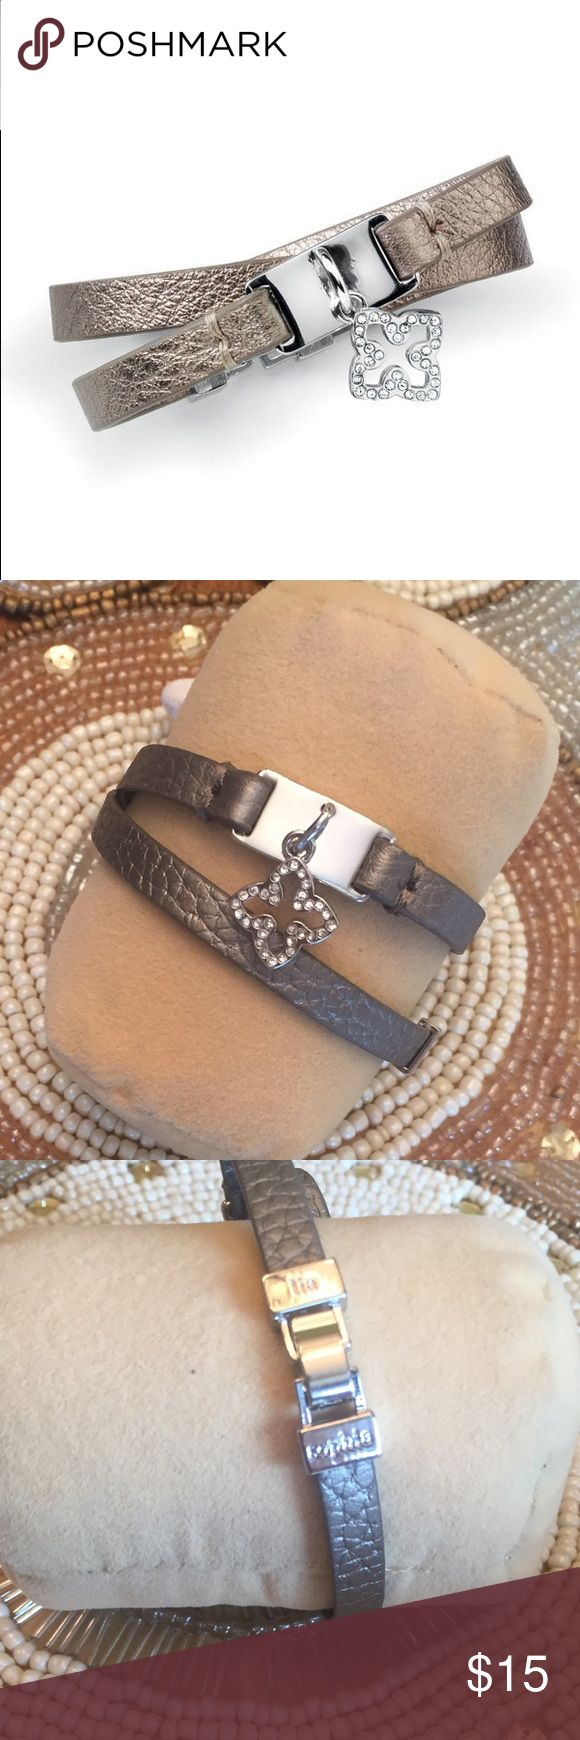 "Lia Sophia RETIRED Lattice Wrap Bracelet  Metallic taupe leather double wrap bracelet with a dangling, crystal-covered clover charm. Bracelet is 7"" with fold-over clasp. Both clasp and charm are in polished silver. EUC with little to no signs of wear. Lia Sophia Jewelry Bracelets"